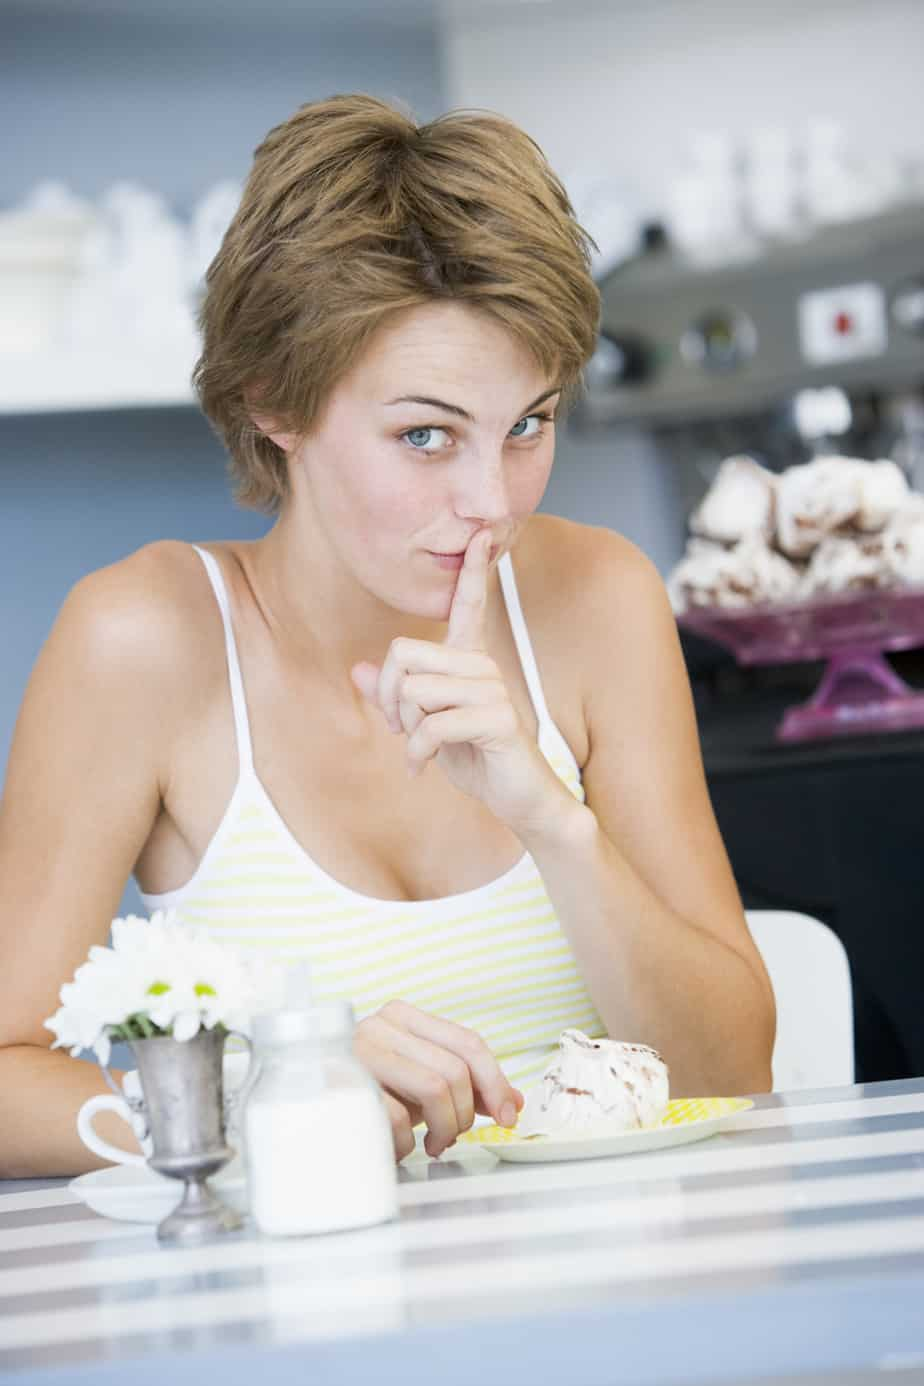 A young woman sitting in a cafe guiltily eating a sweet treat